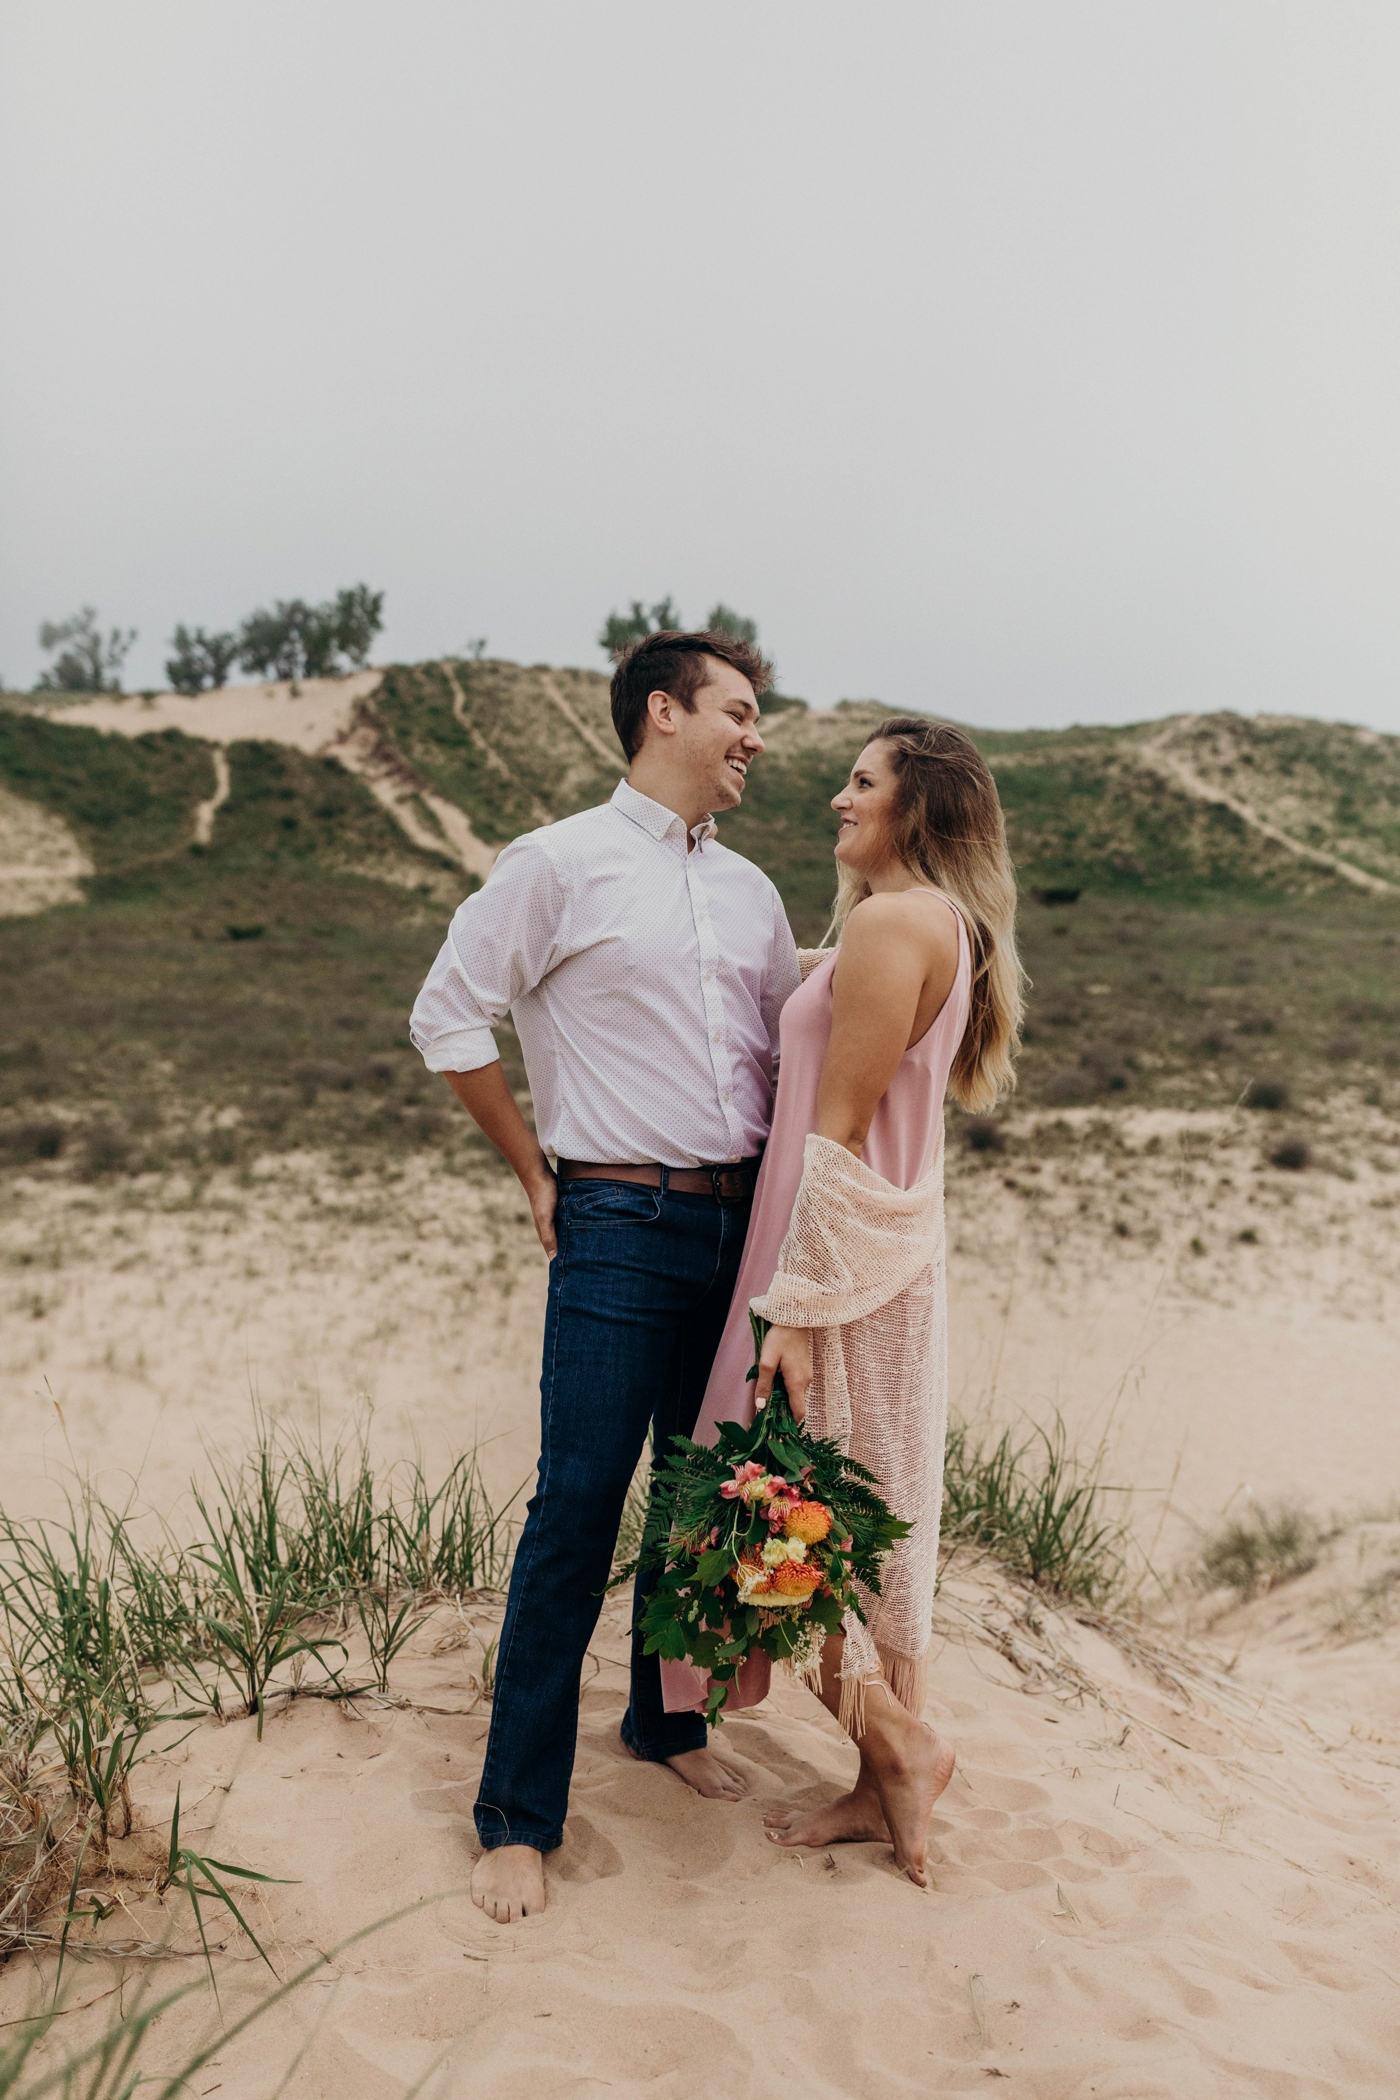 Sleeping_Bear_Dunes_Couples_Adventure_Session_Adventure_Wedding_Photographer_Hiking_with_Heels_Brett+Emily-2.jpg